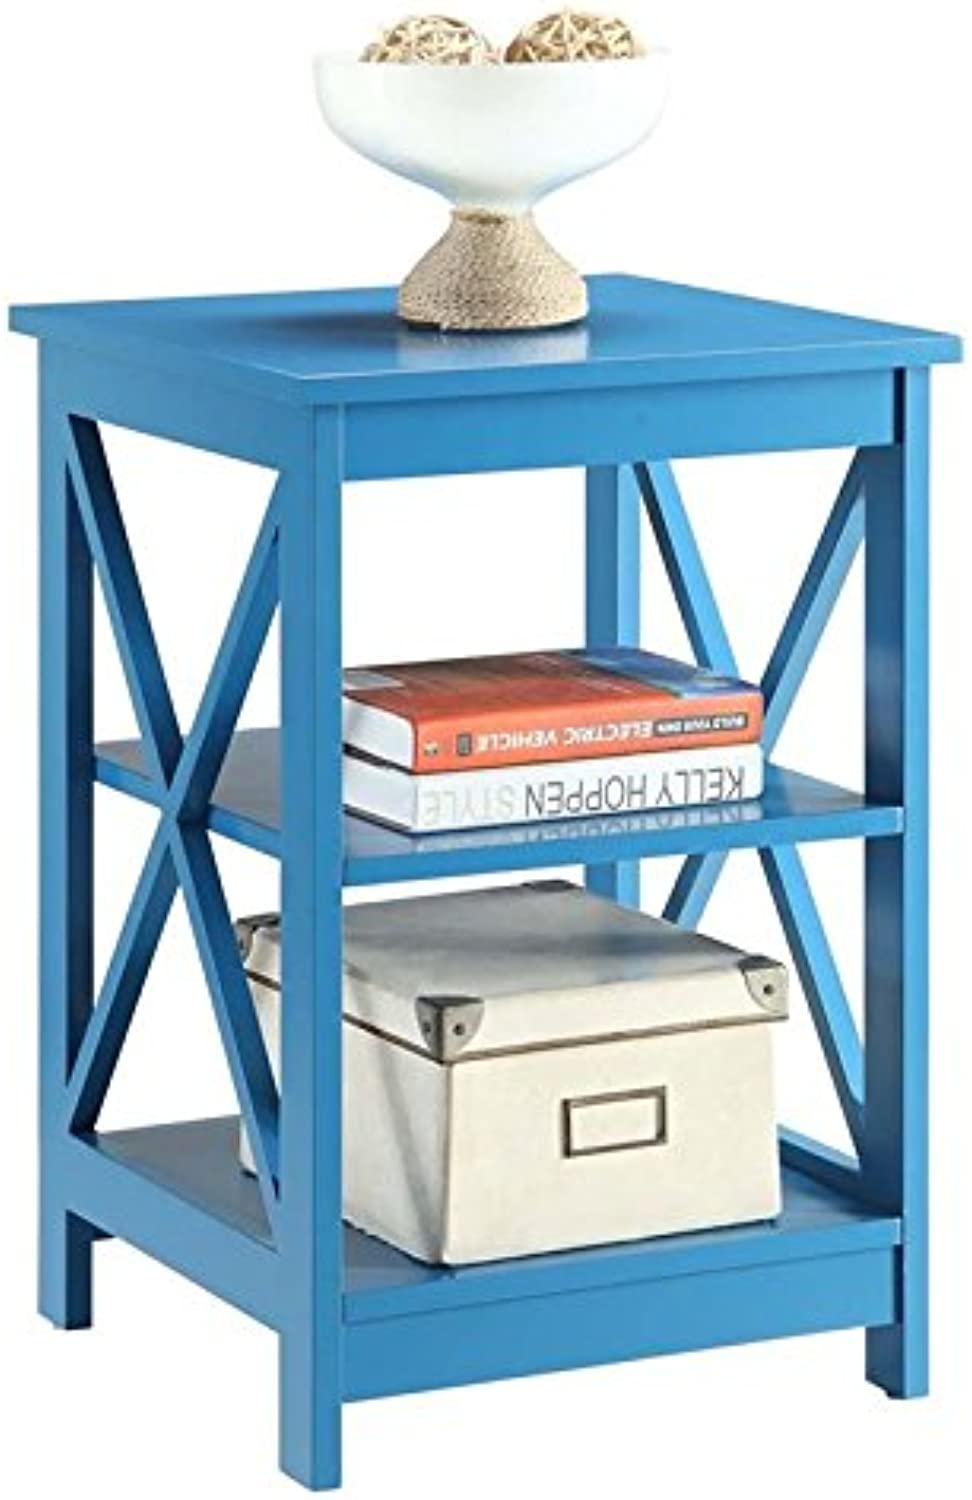 Pemberly Row End Table in bluee